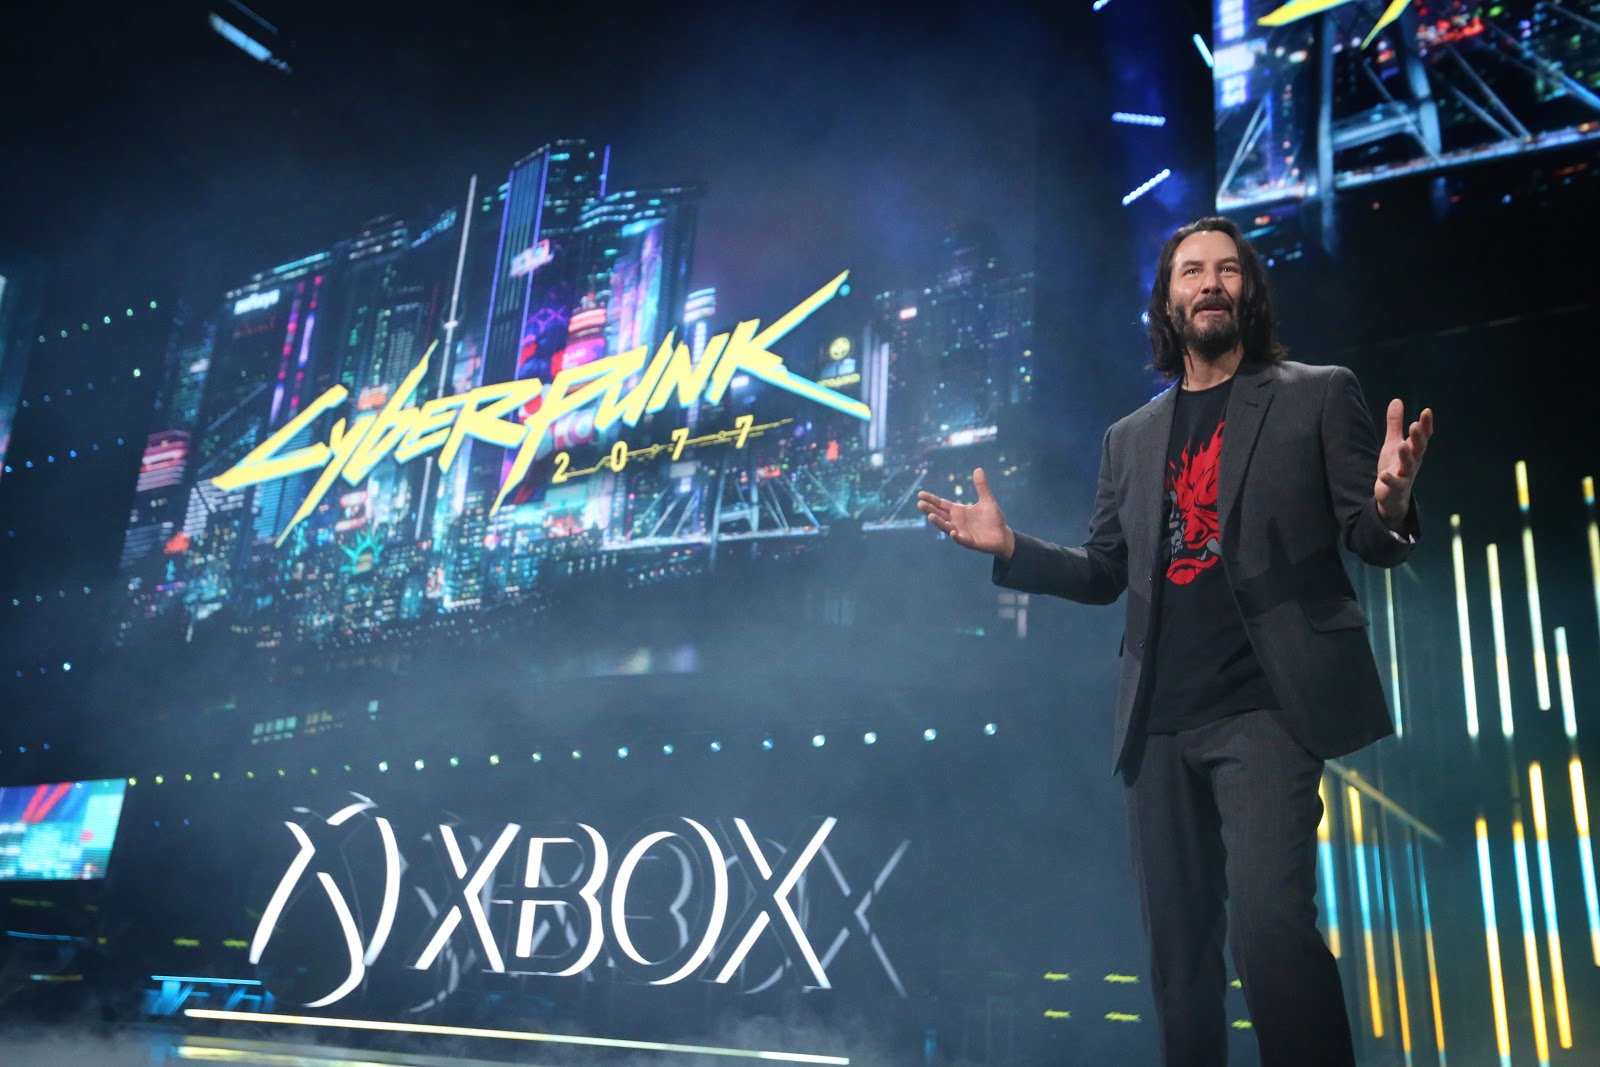 Keanu Reeves at Cyberpunk 2077 Cinematic Trailer Review